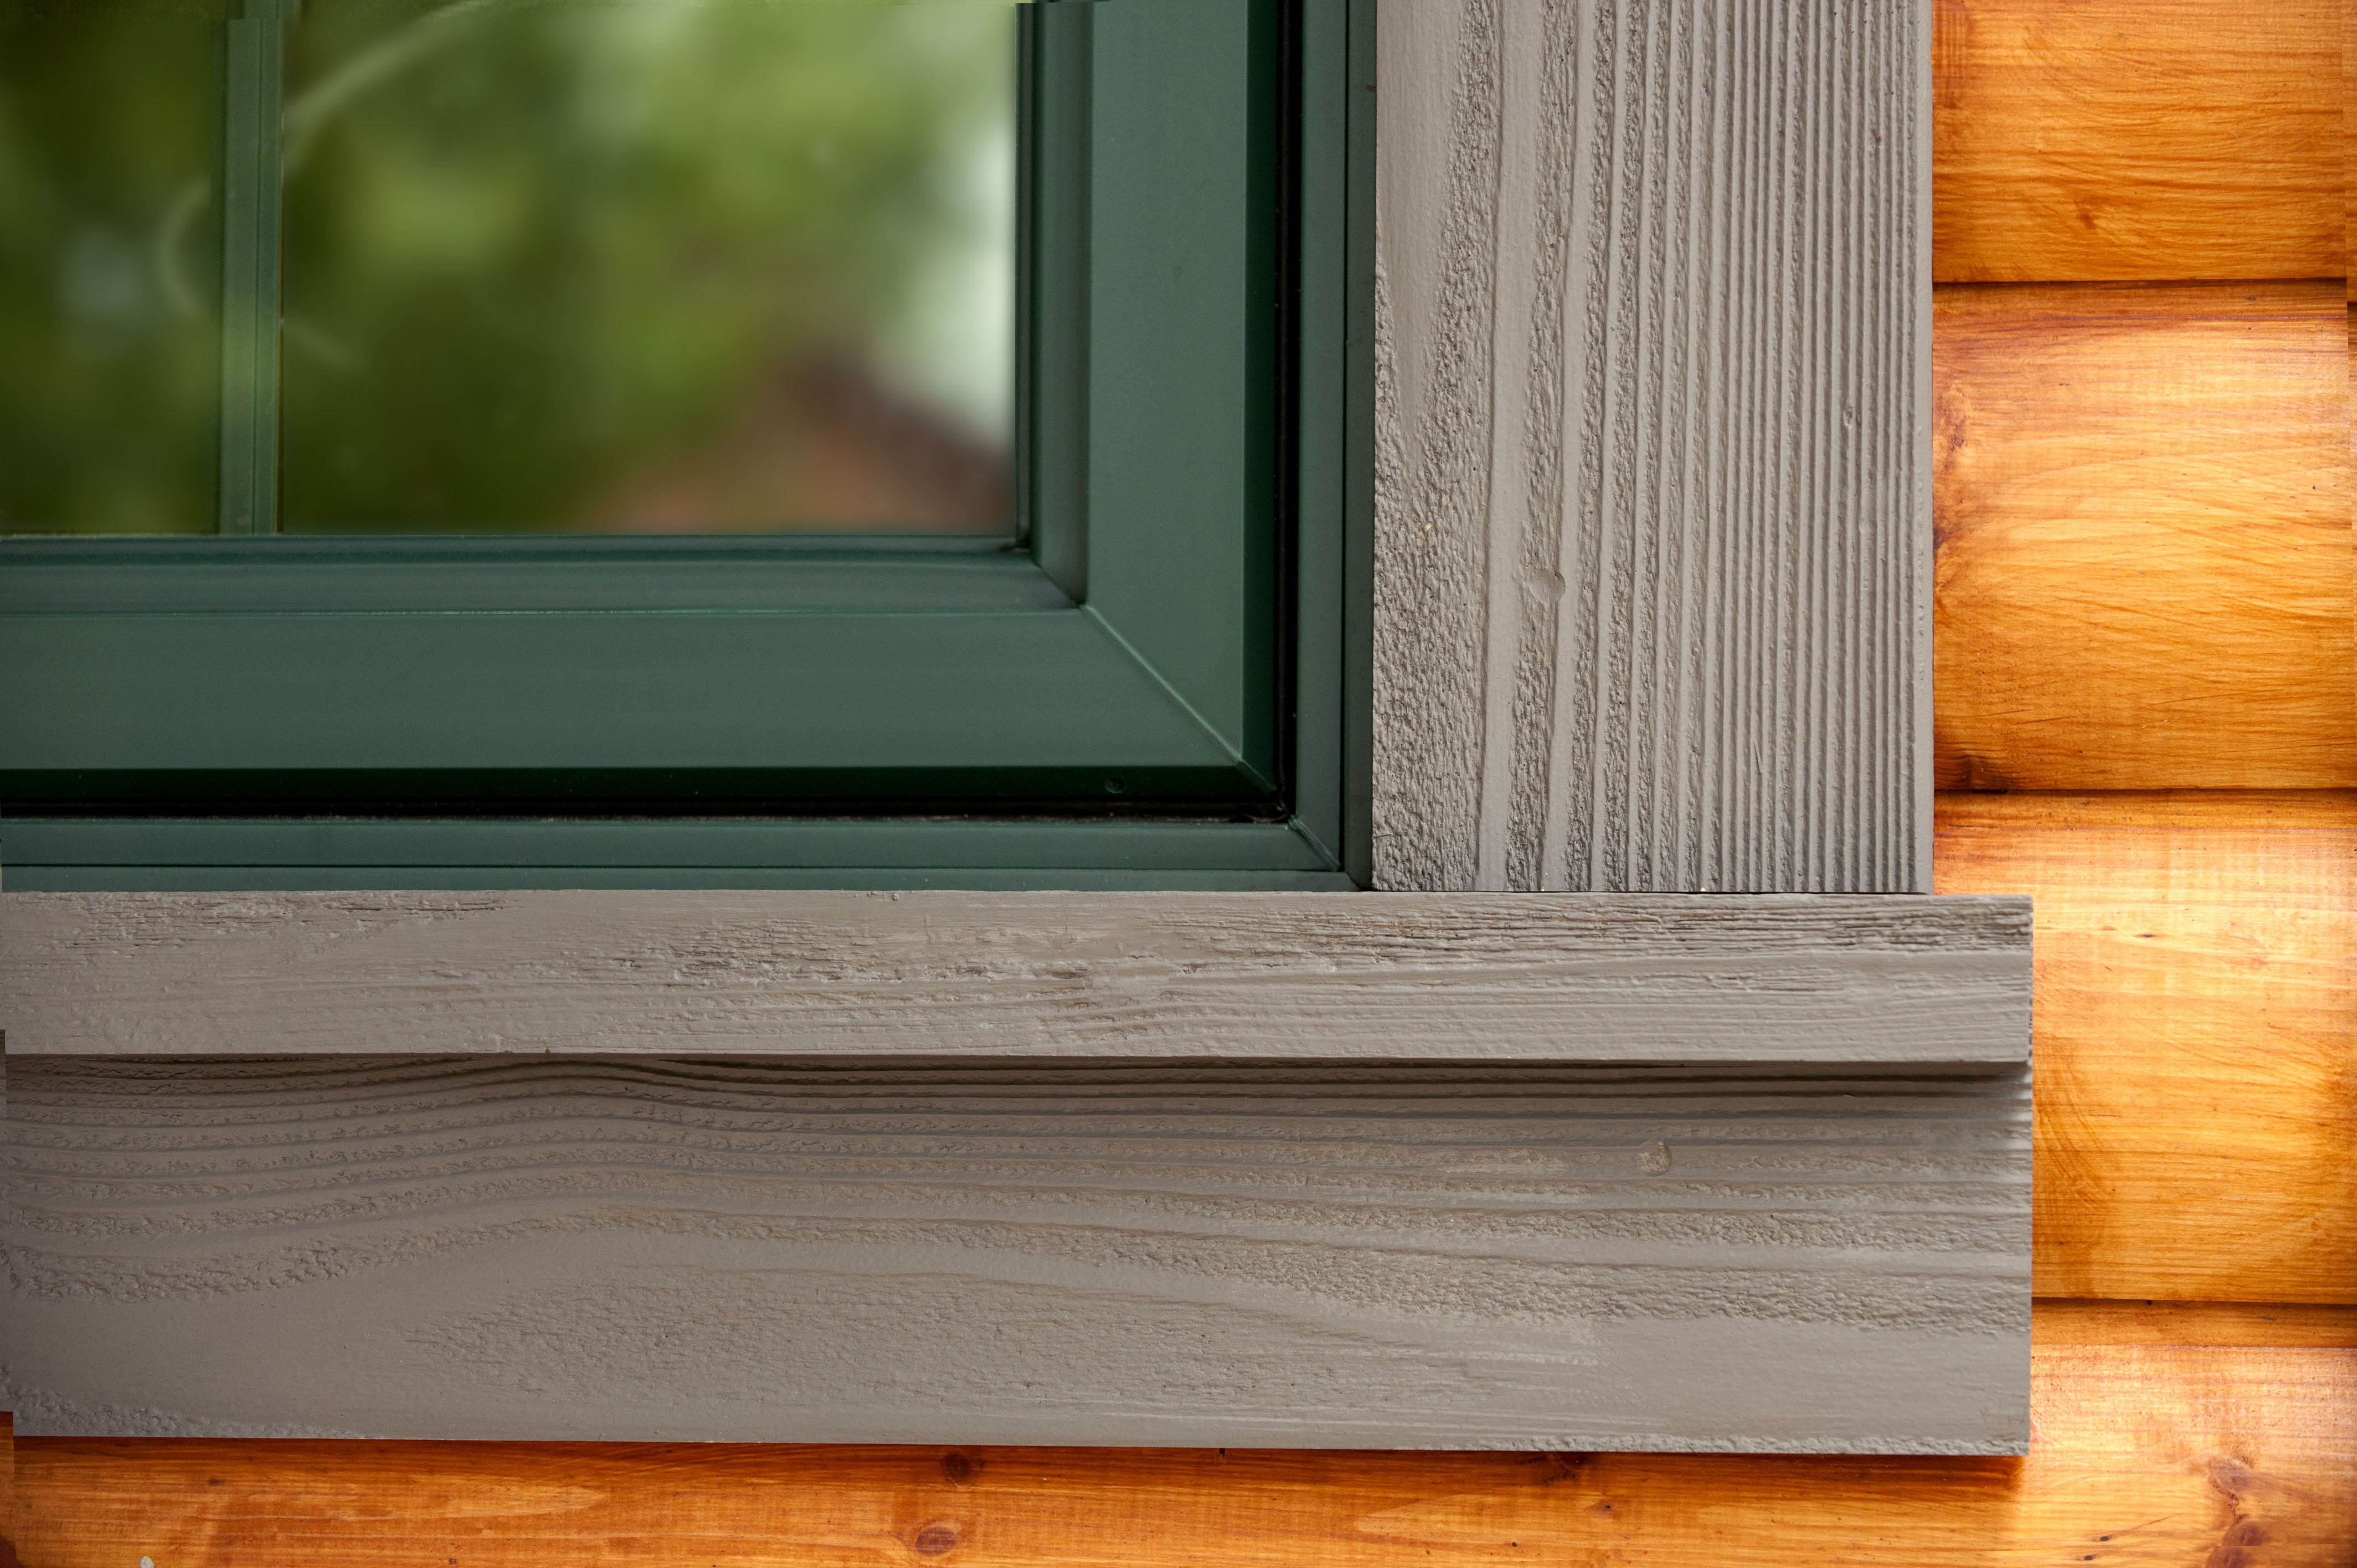 Is this a Window Sill? Read here to learn more.